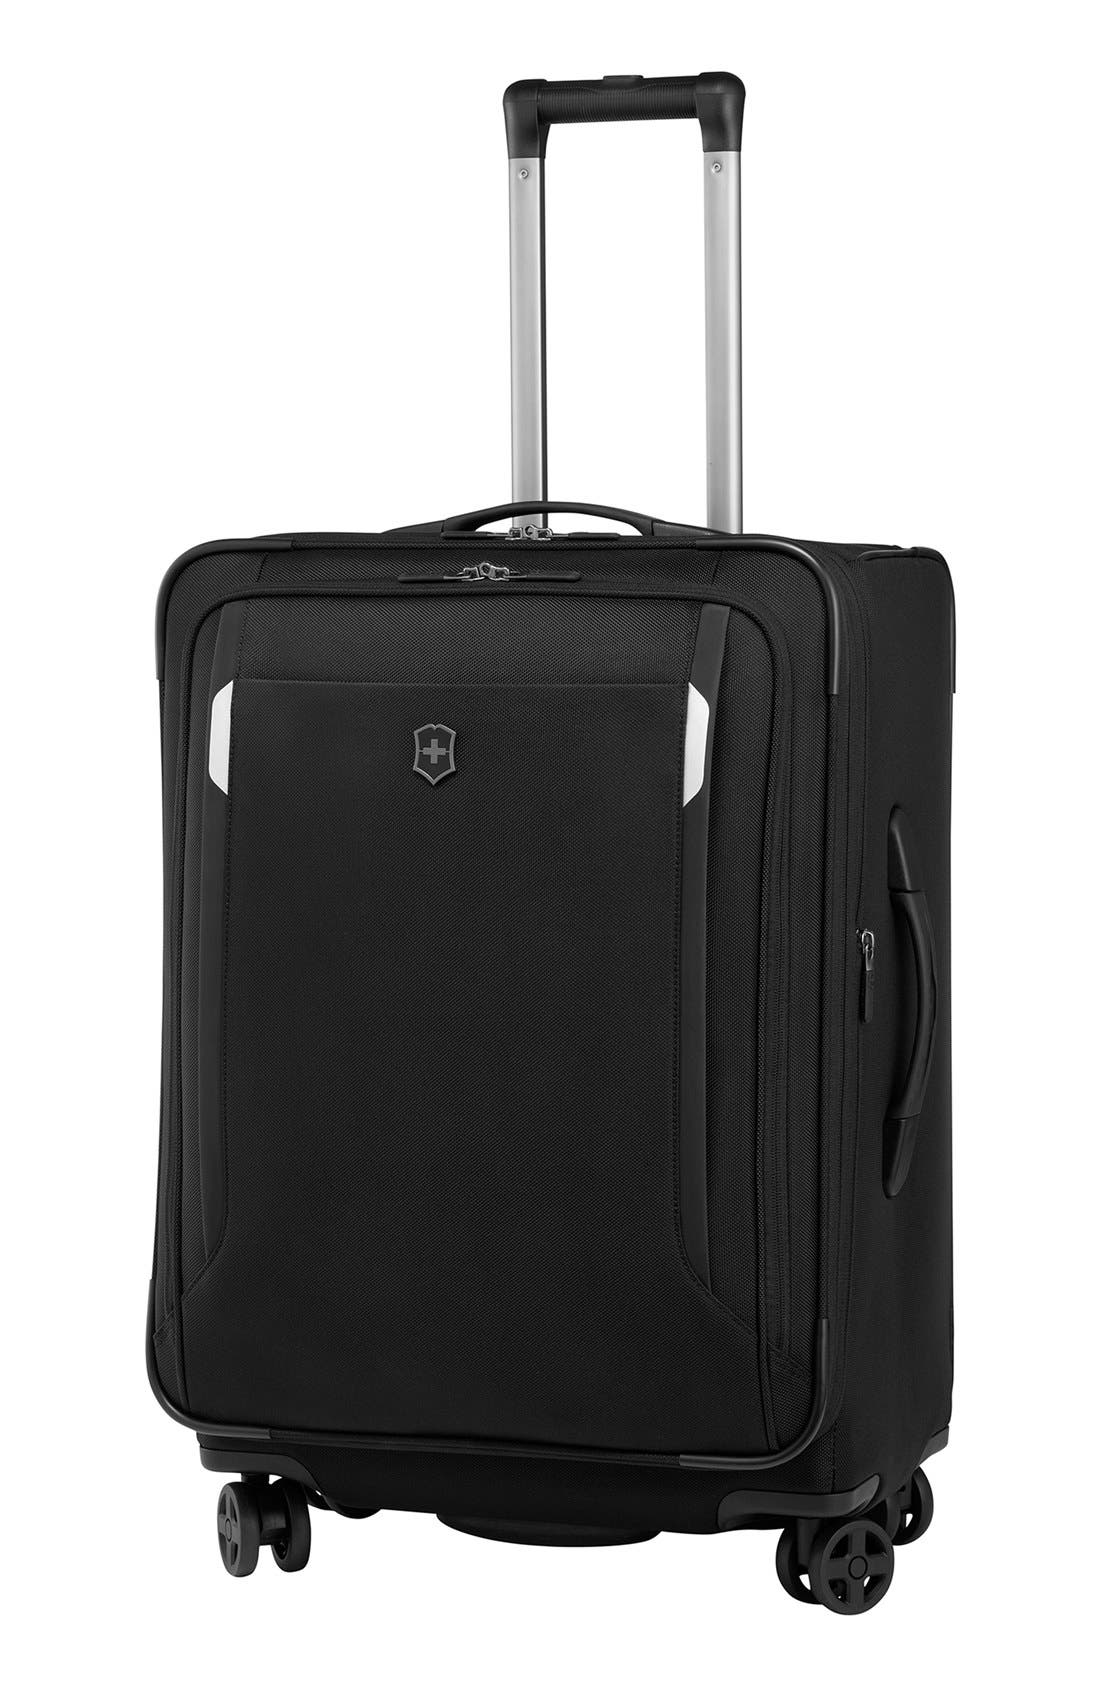 WT 5.0 Dual Caster Wheeled 24-Inch Packing Case,                             Main thumbnail 1, color,                             Black